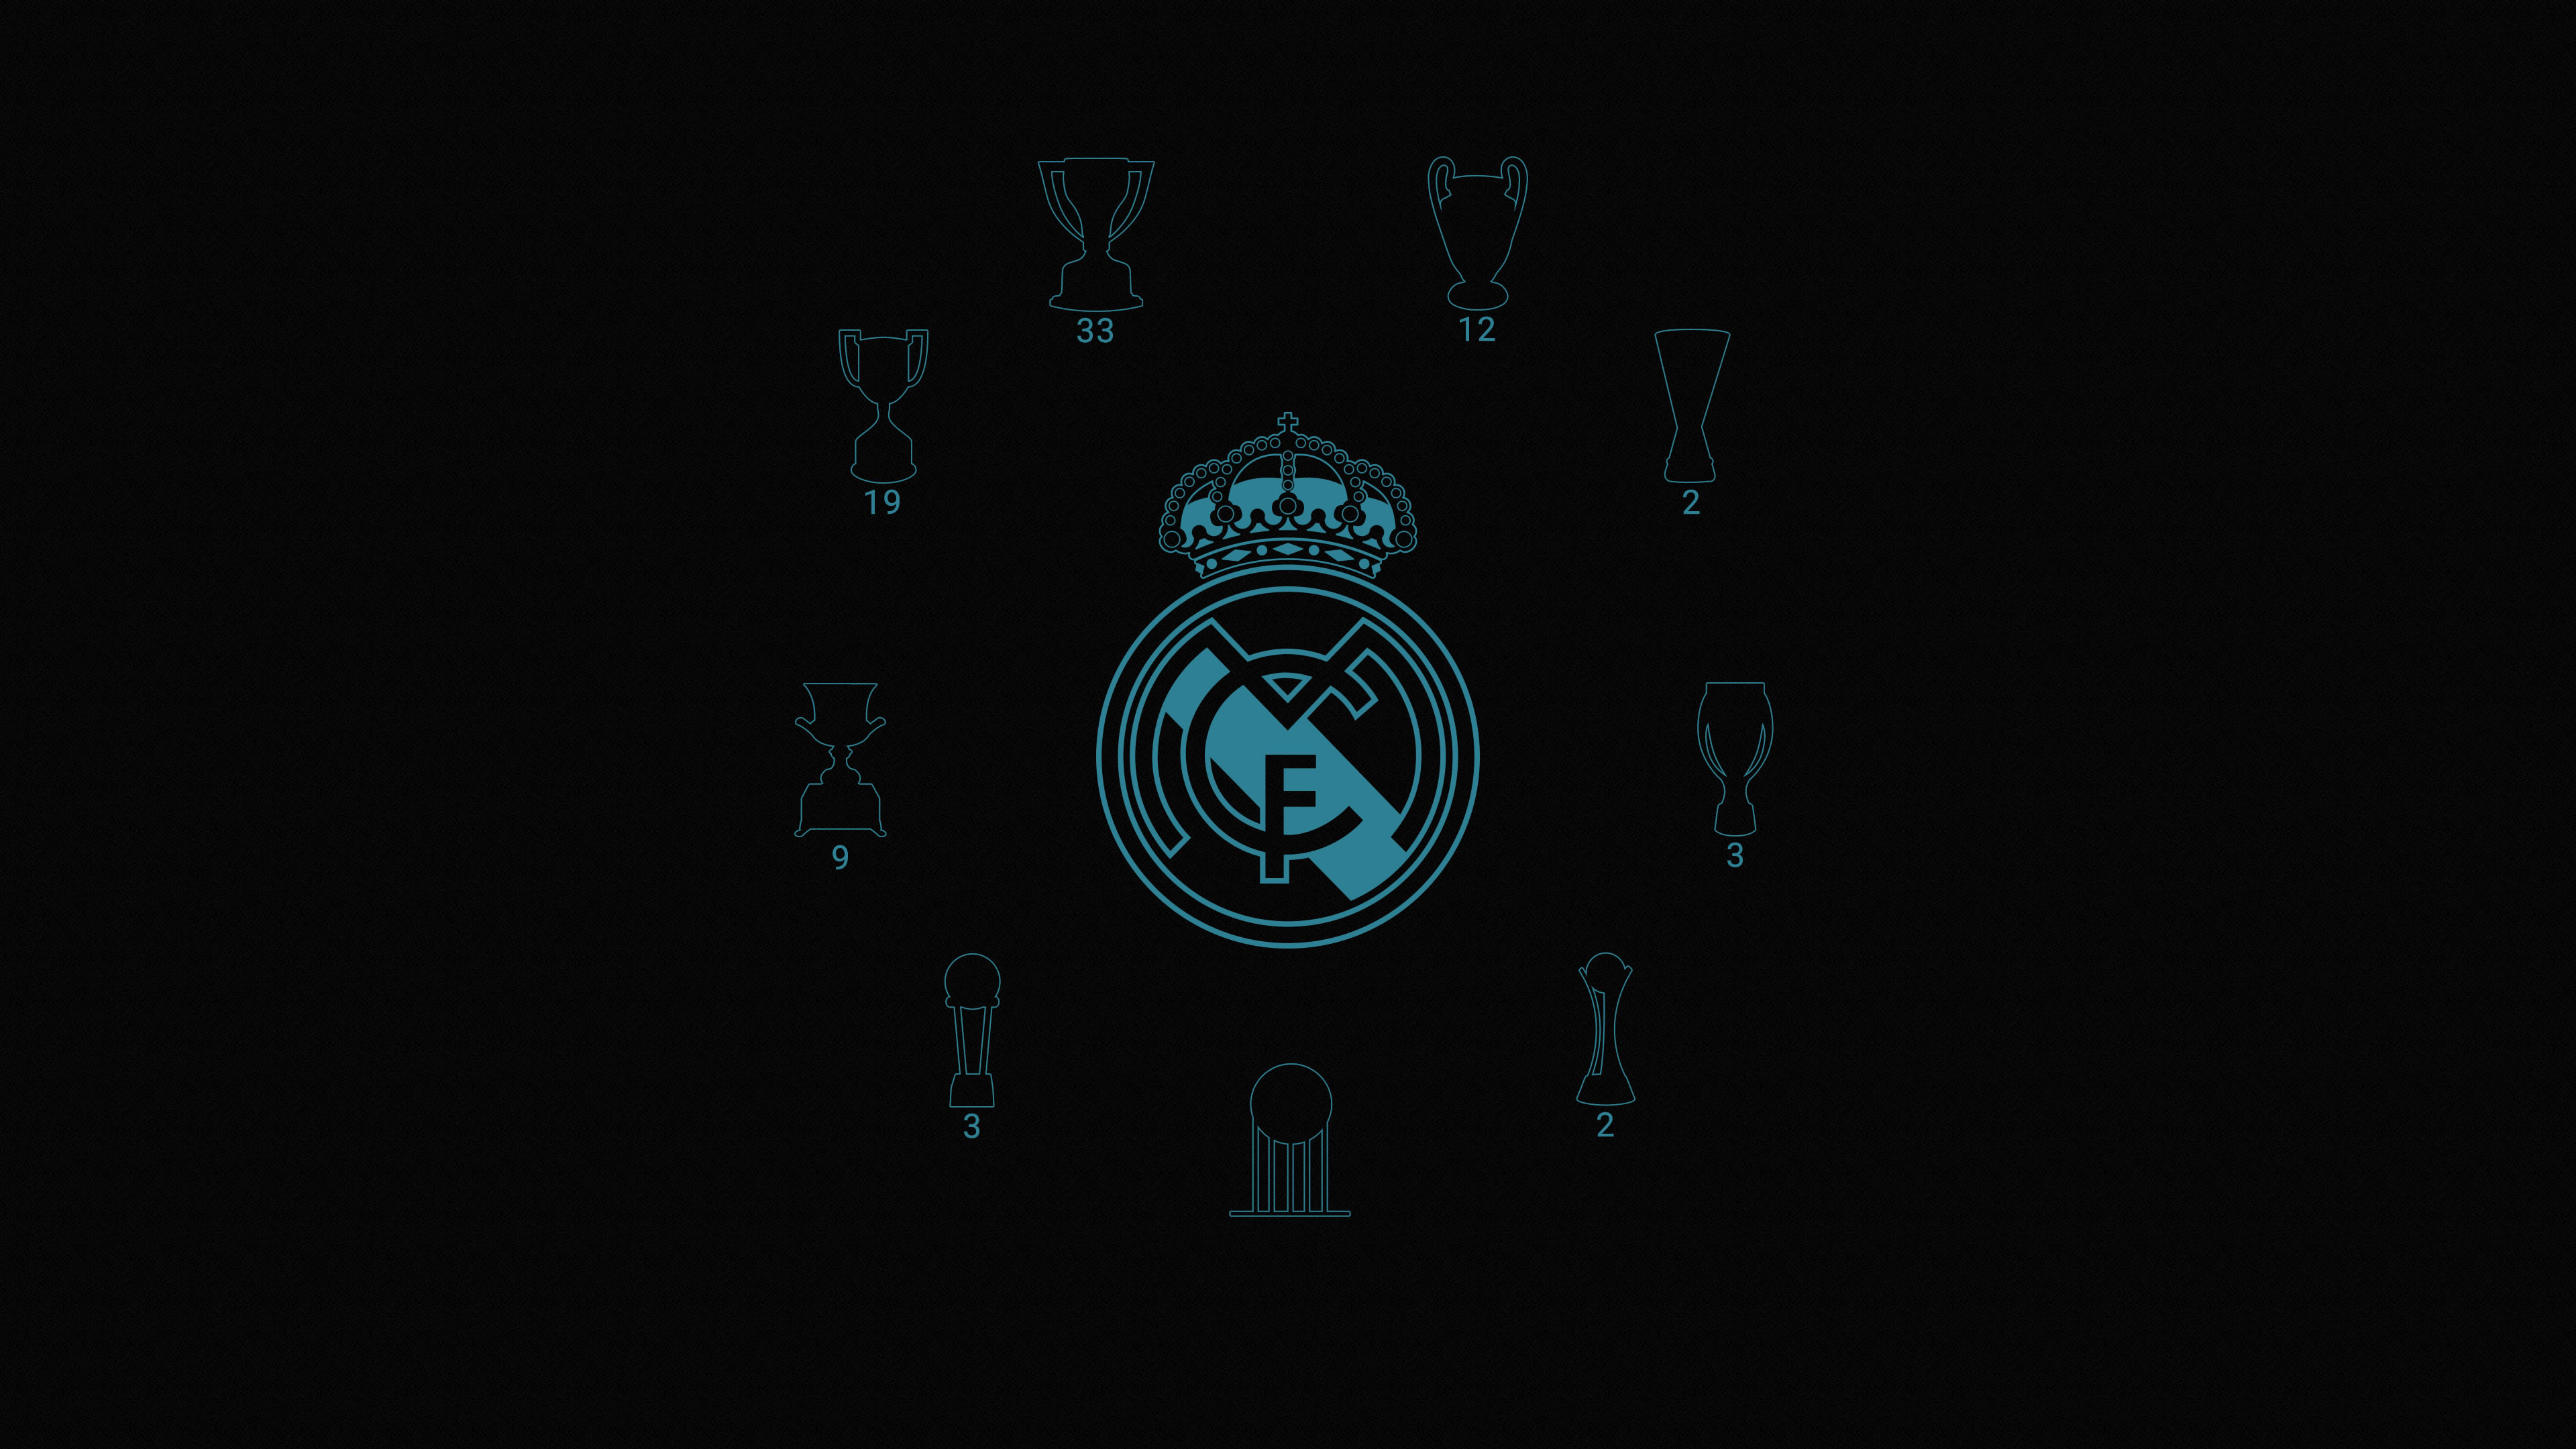 Real Madrid Away Wallpaper (2017/18) by khalidvawda